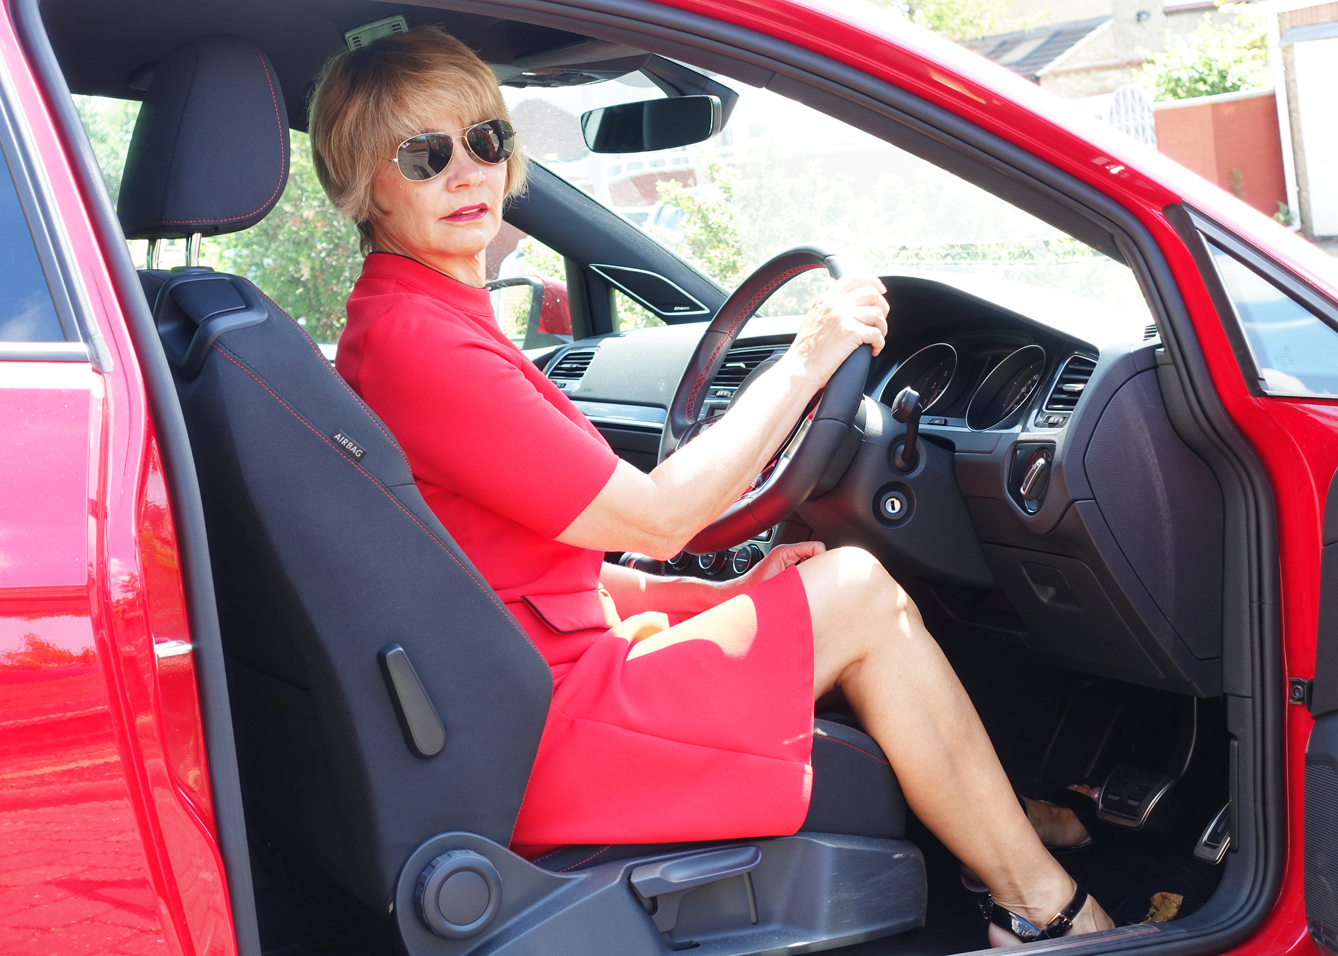 Gail Hanlon from Is This Mutton? in red skater dress and red Golf car in an article on chic, quirky dresses for the workplace